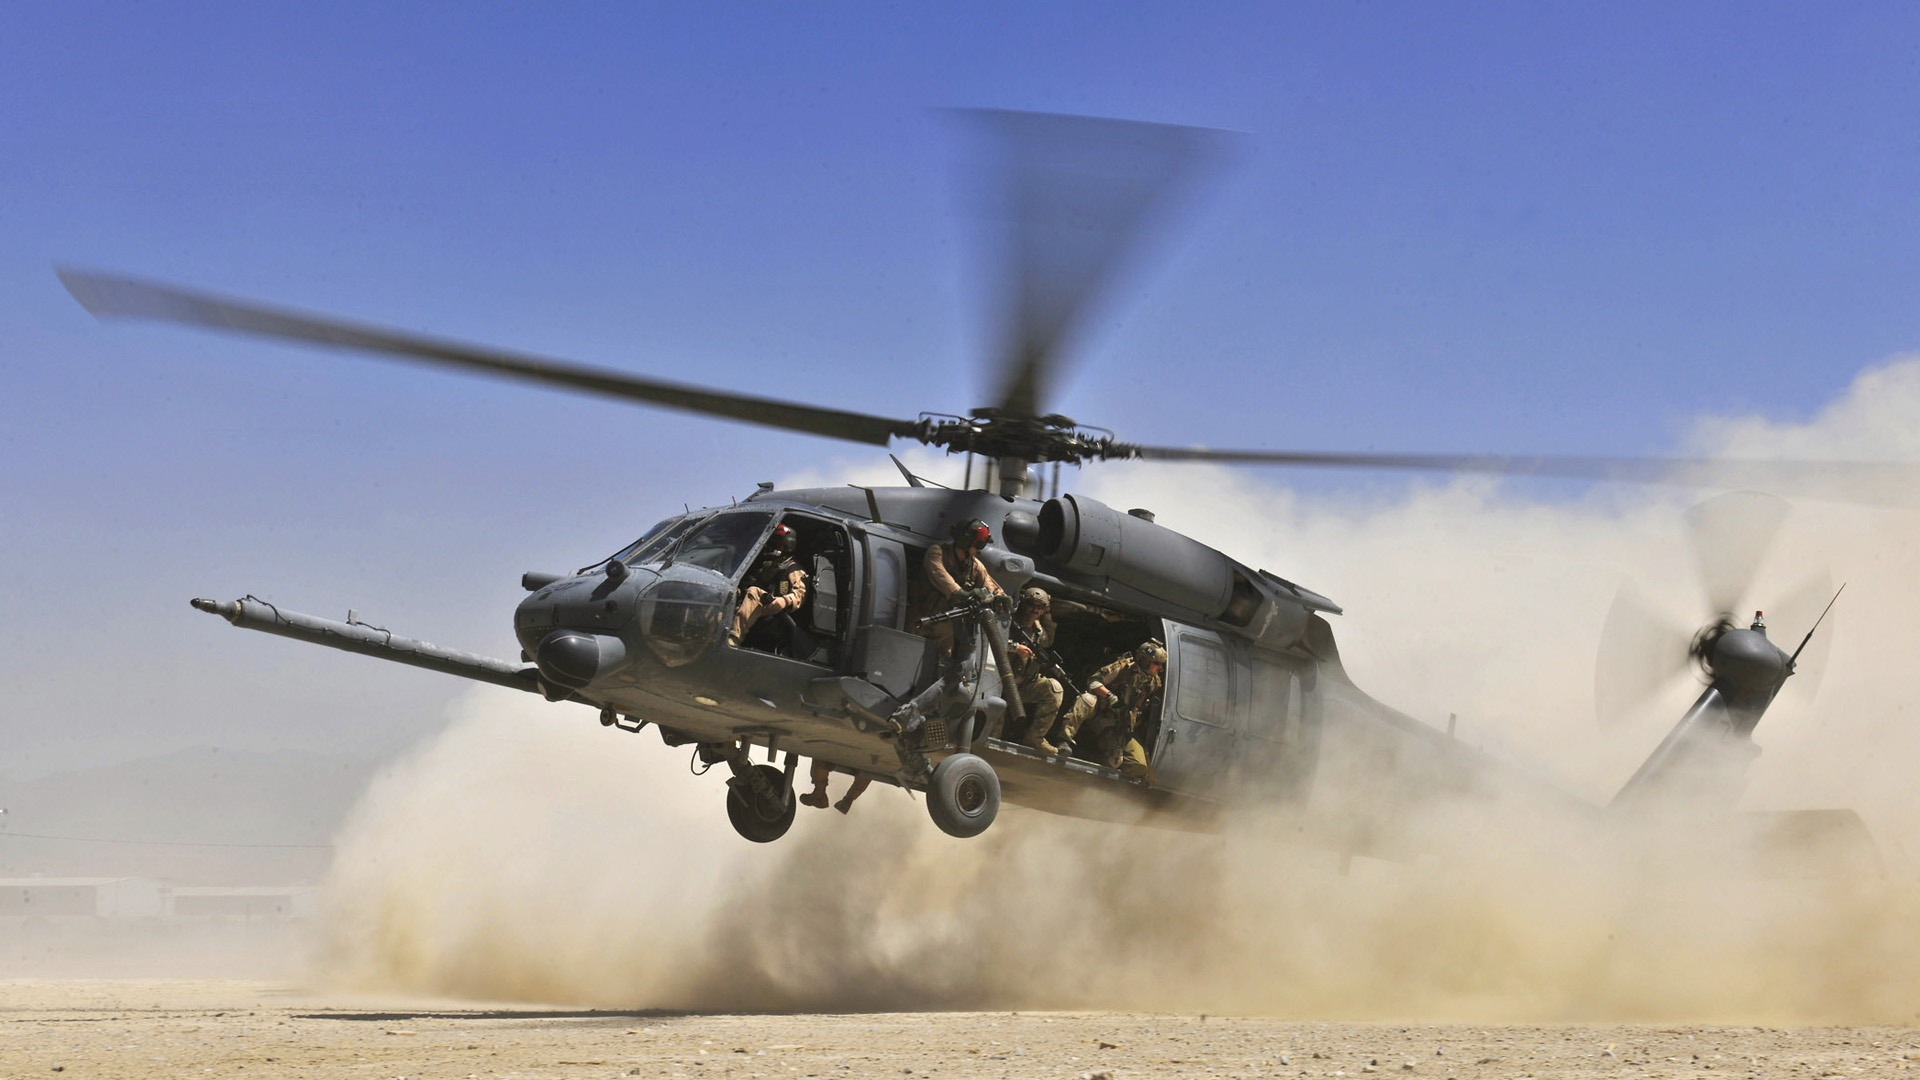 Military Helicopters Hd Wallpapers 18 1920x1080 Wallpaper